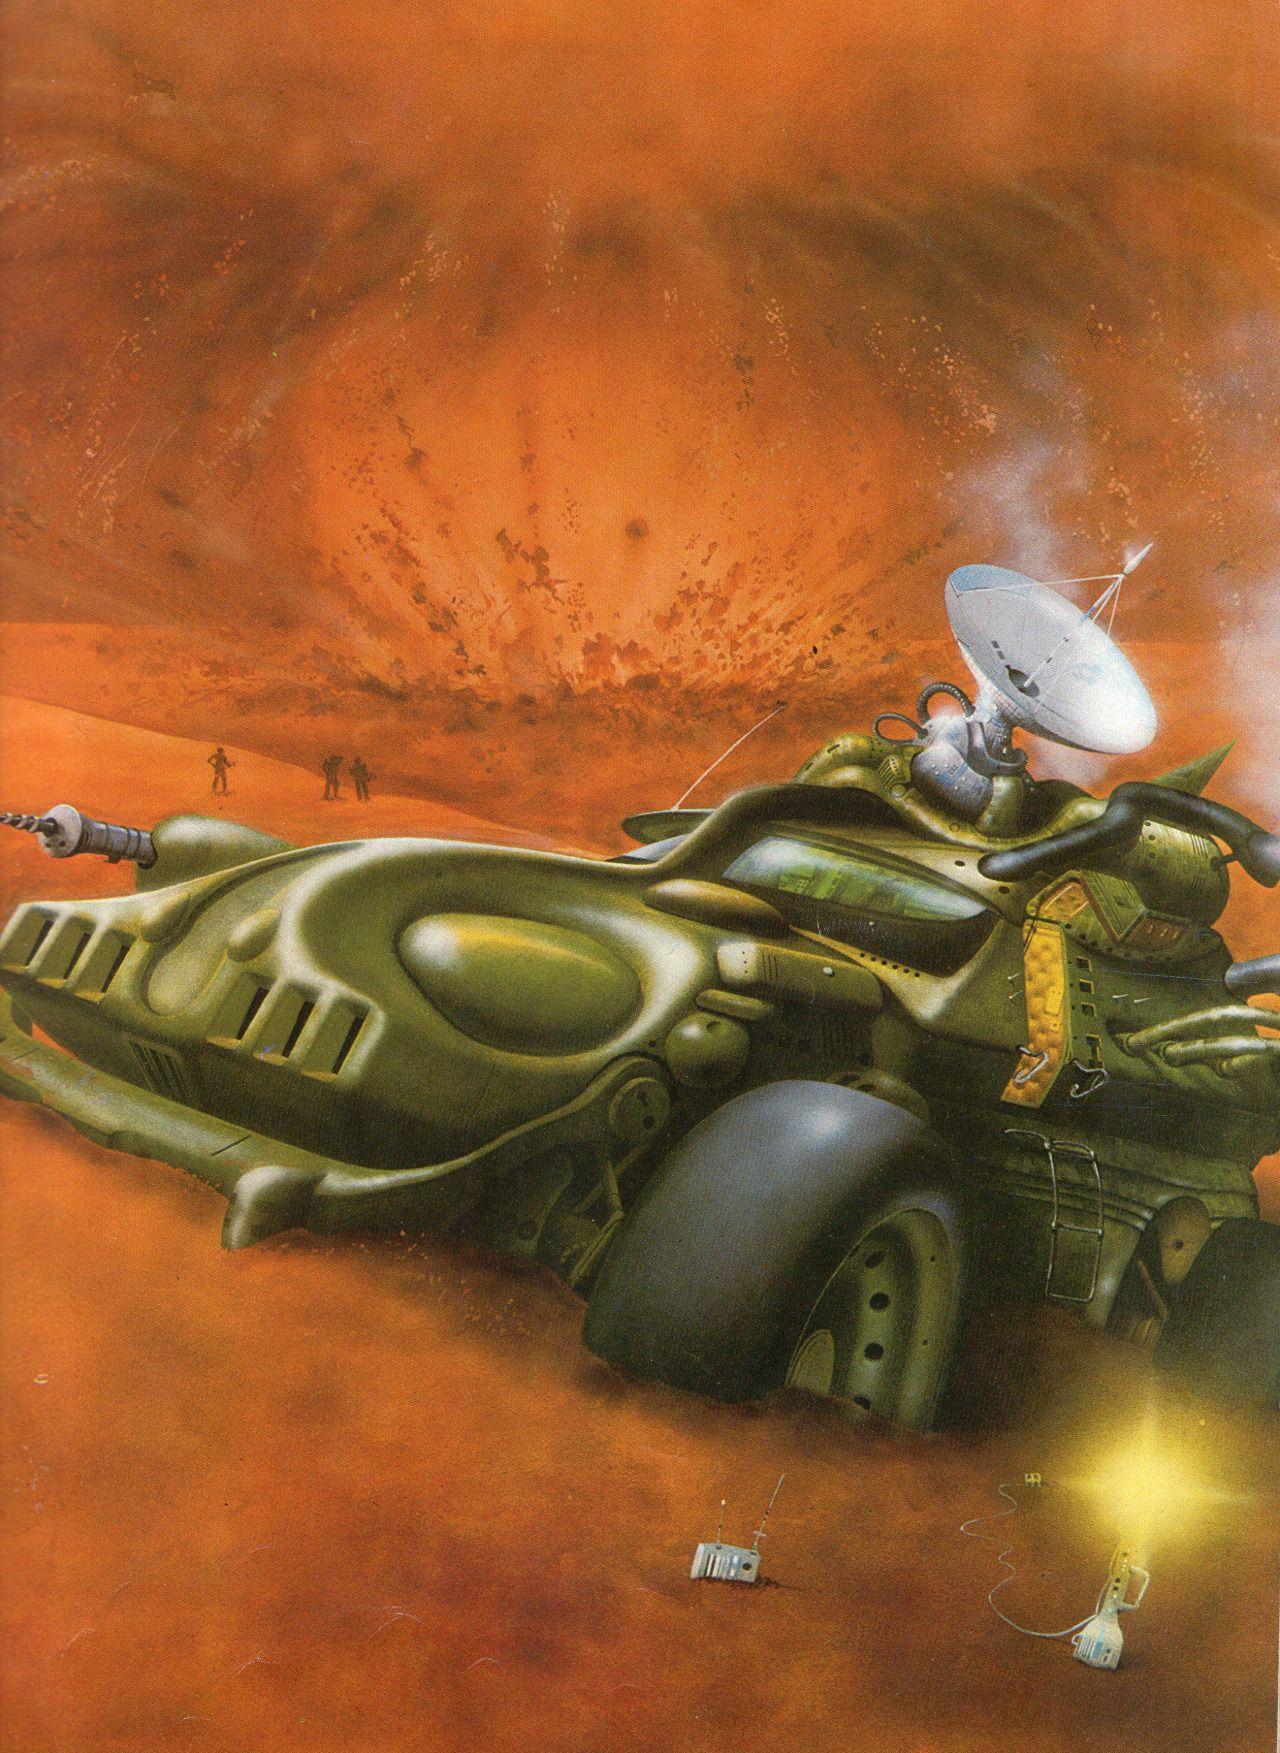 Artwork from the book Great Space Battles published in 1979 Artwork